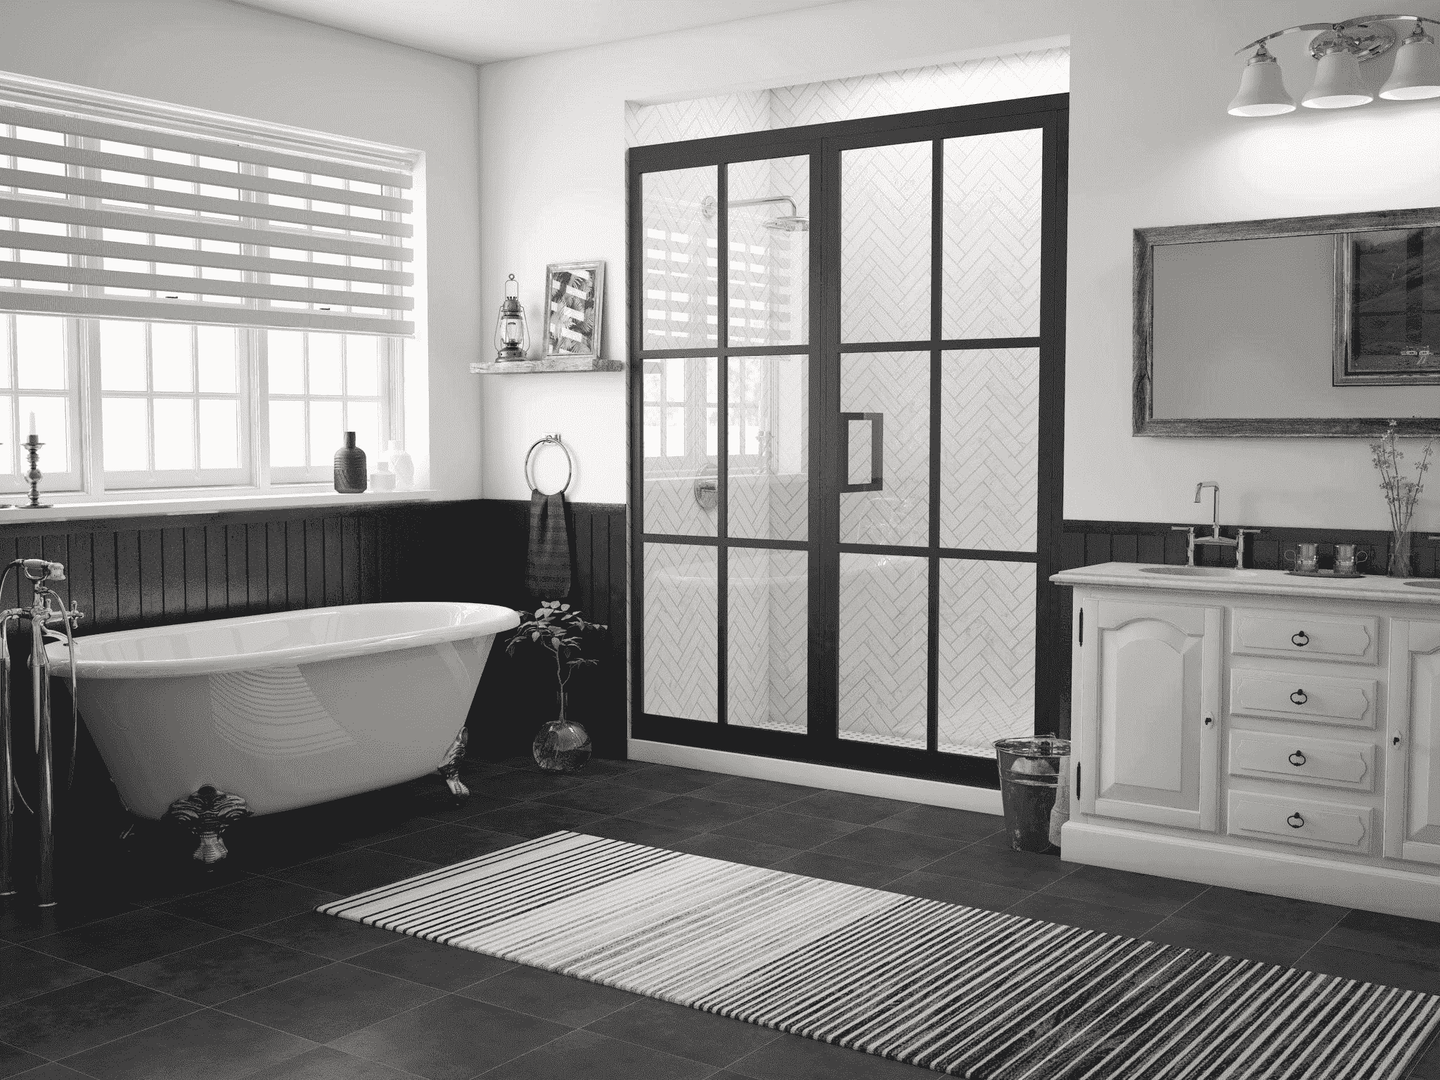 GRIDSCAPE BLACK FRAME SHOWER DOOR COLLECTION